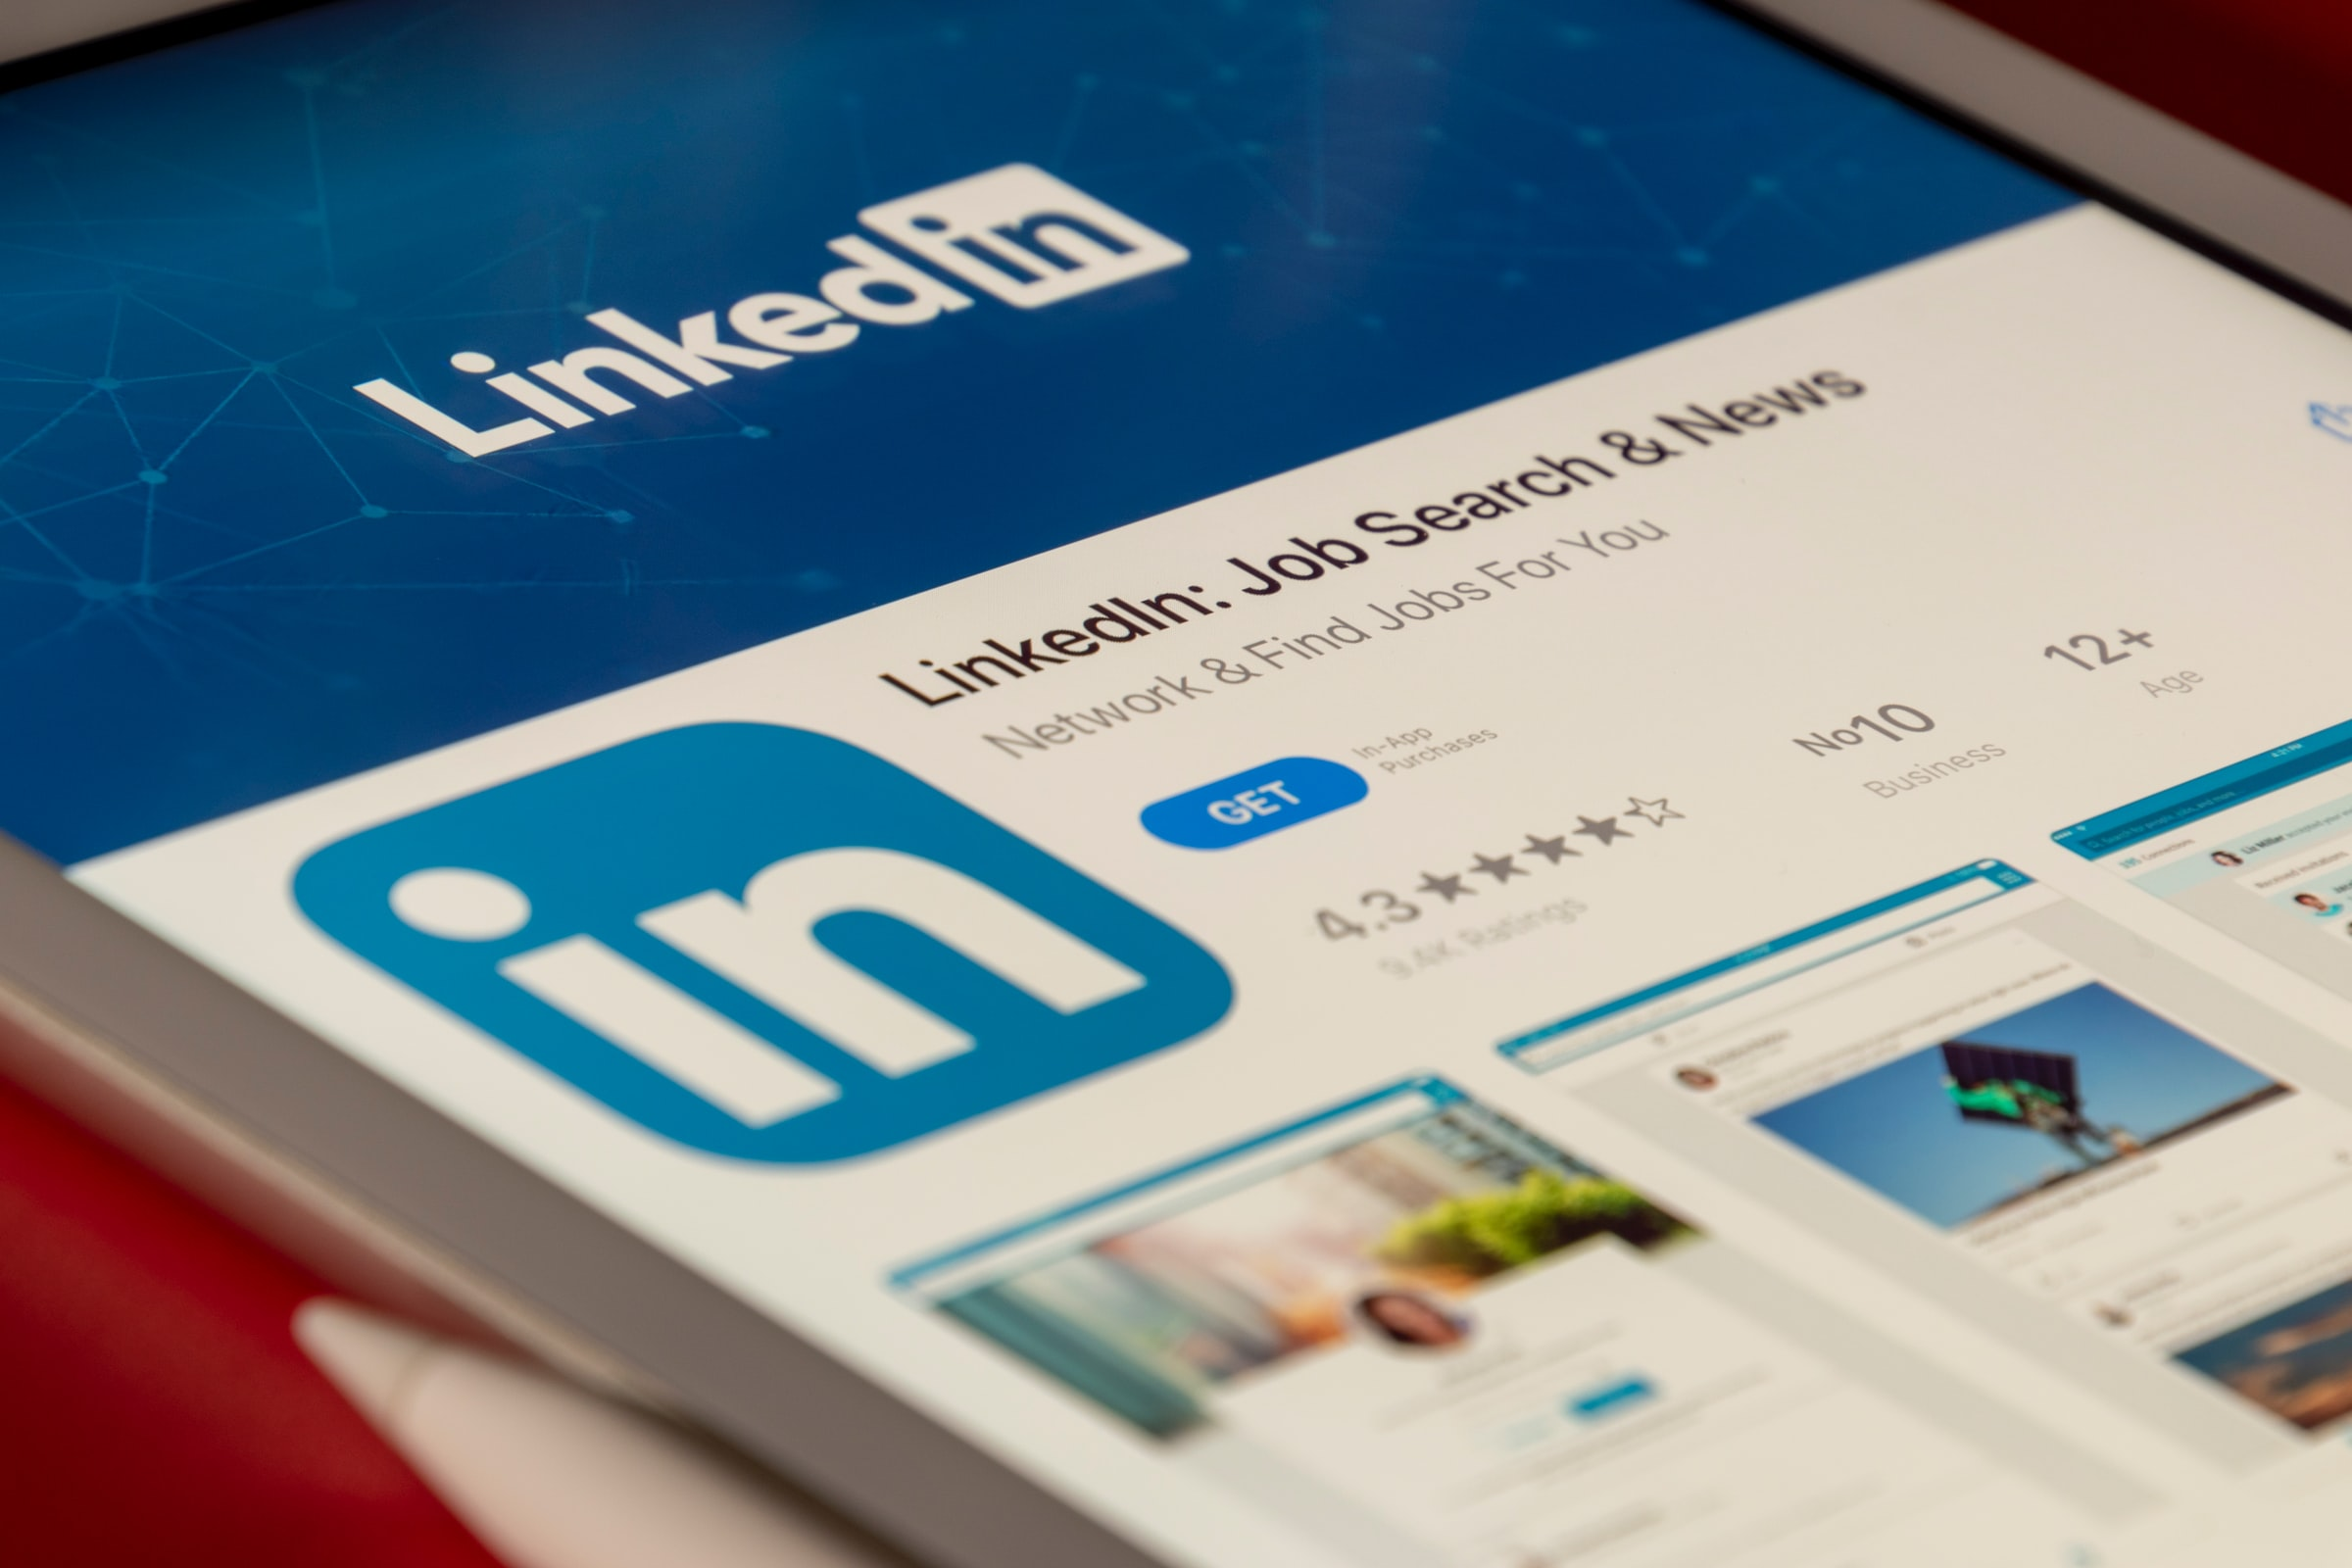 Finding new leads on LinkedIn is a good strategy to win new work